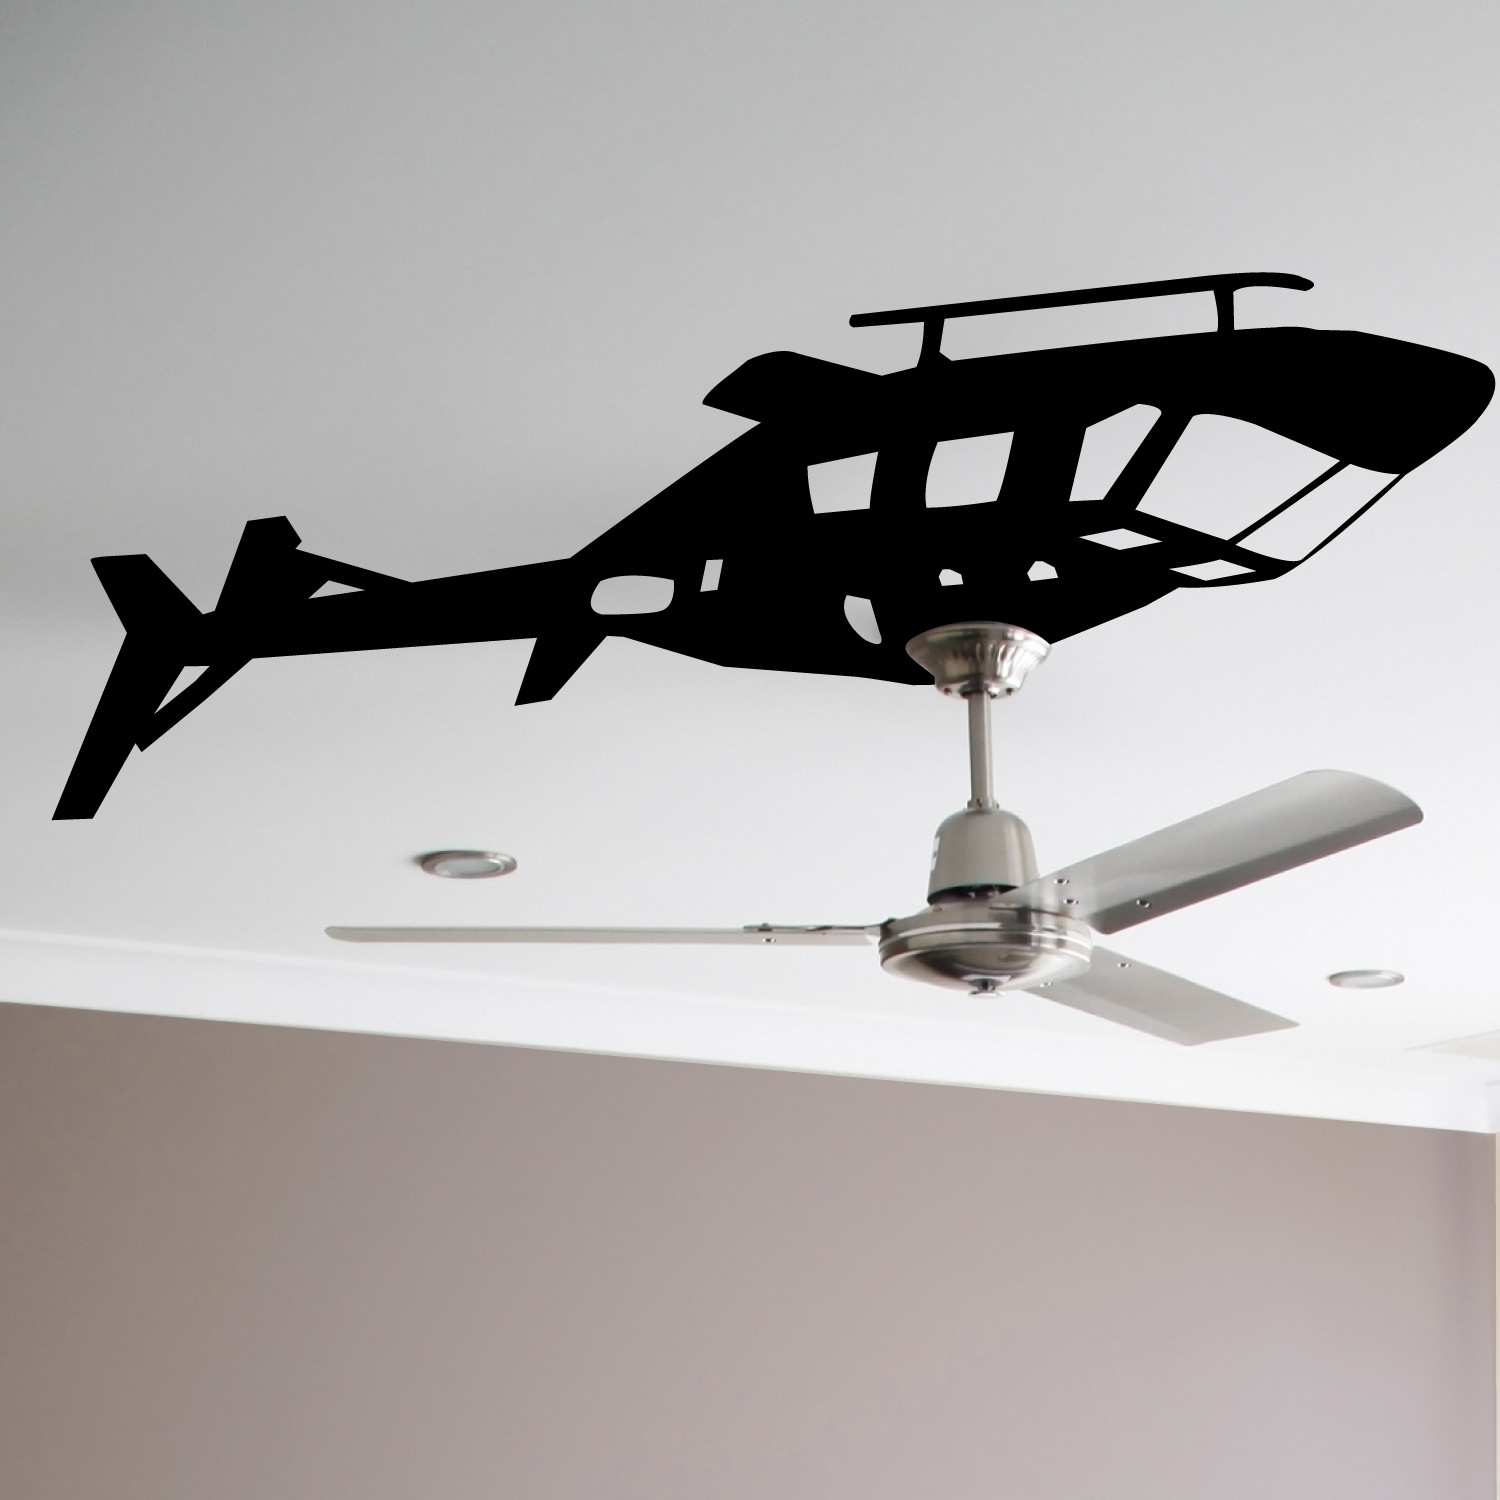 Helicopter Ceiling Fan Decal WALLTAT Touch of Modern